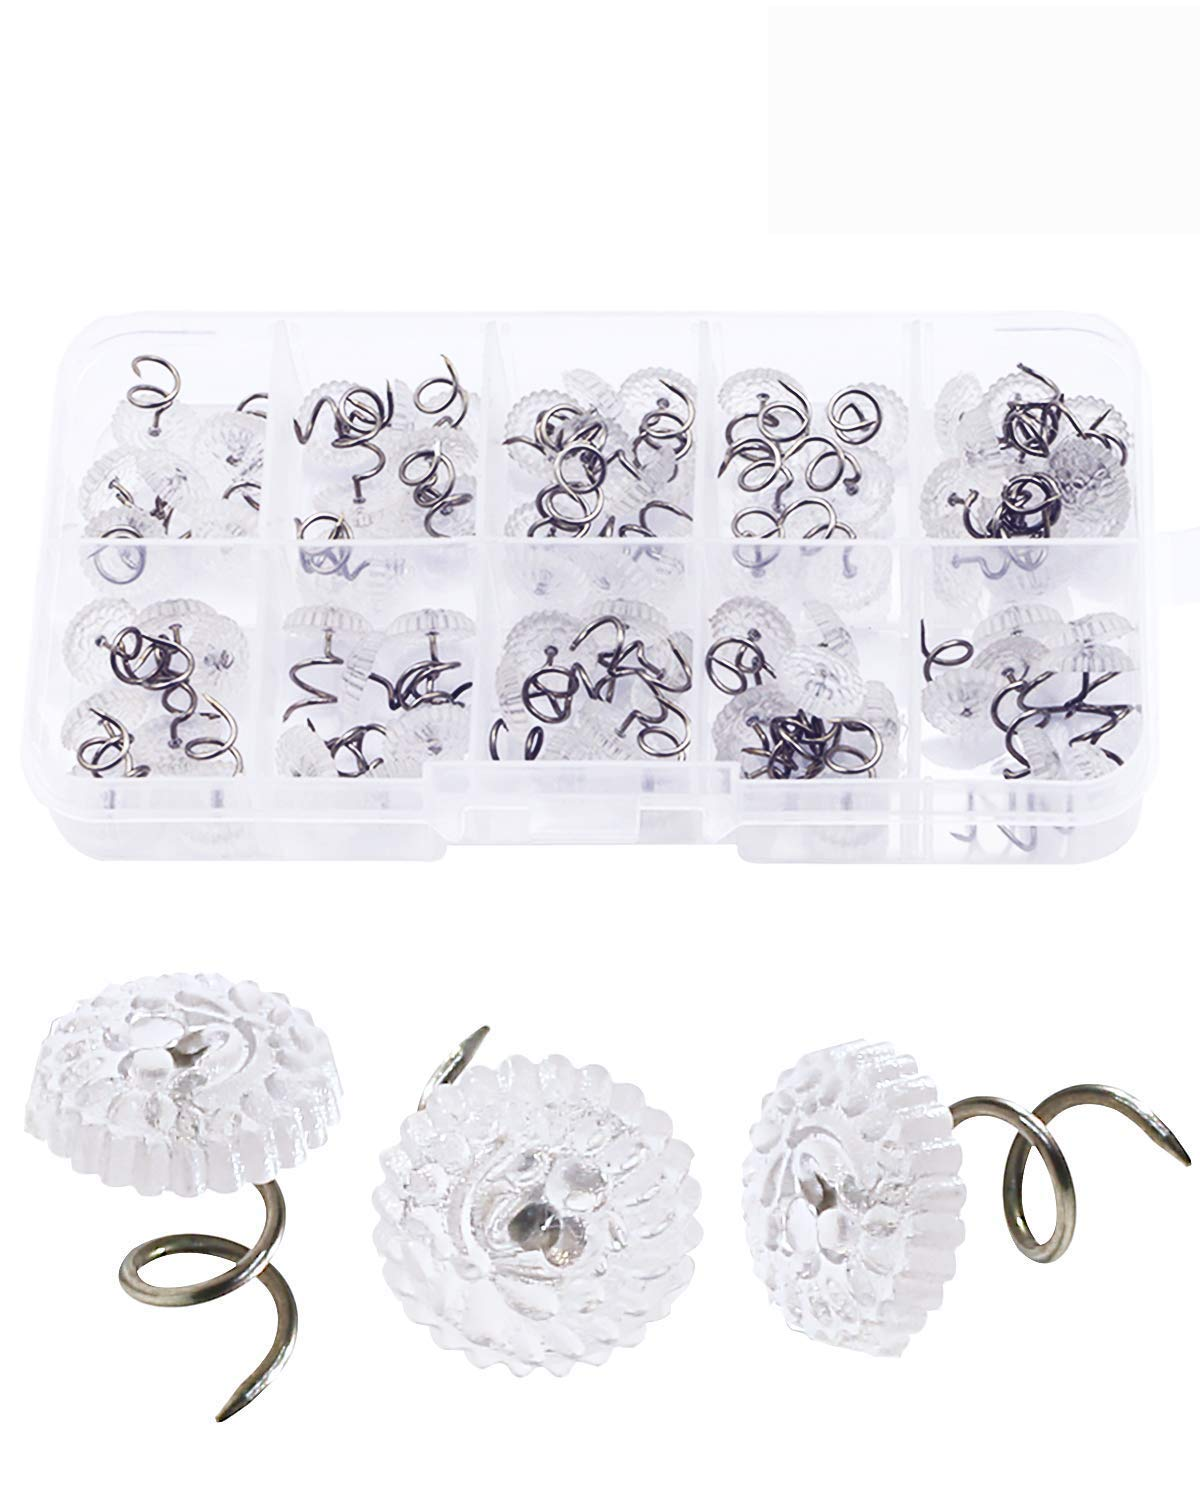 SBYURE 100 Pcs Clear Heads Twist Pins  Keeping Upholstery, Slipcovers Bedskirts in Place (Plastic Contain Box)